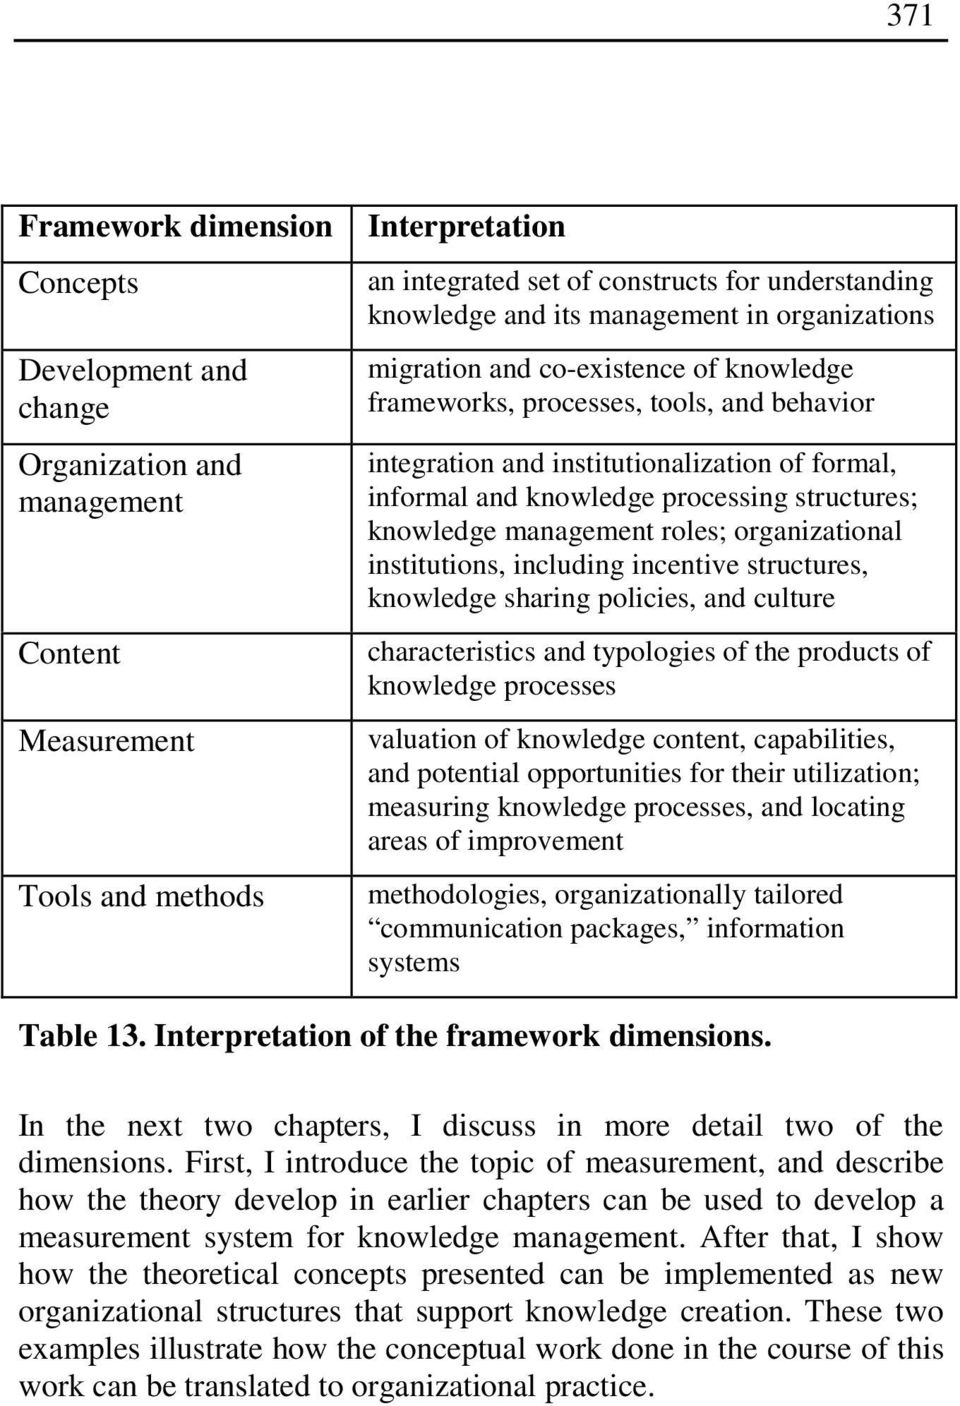 processing structures; knowledge management roles; organizational institutions, including incentive structures, knowledge sharing policies, and culture characteristics and typologies of the products